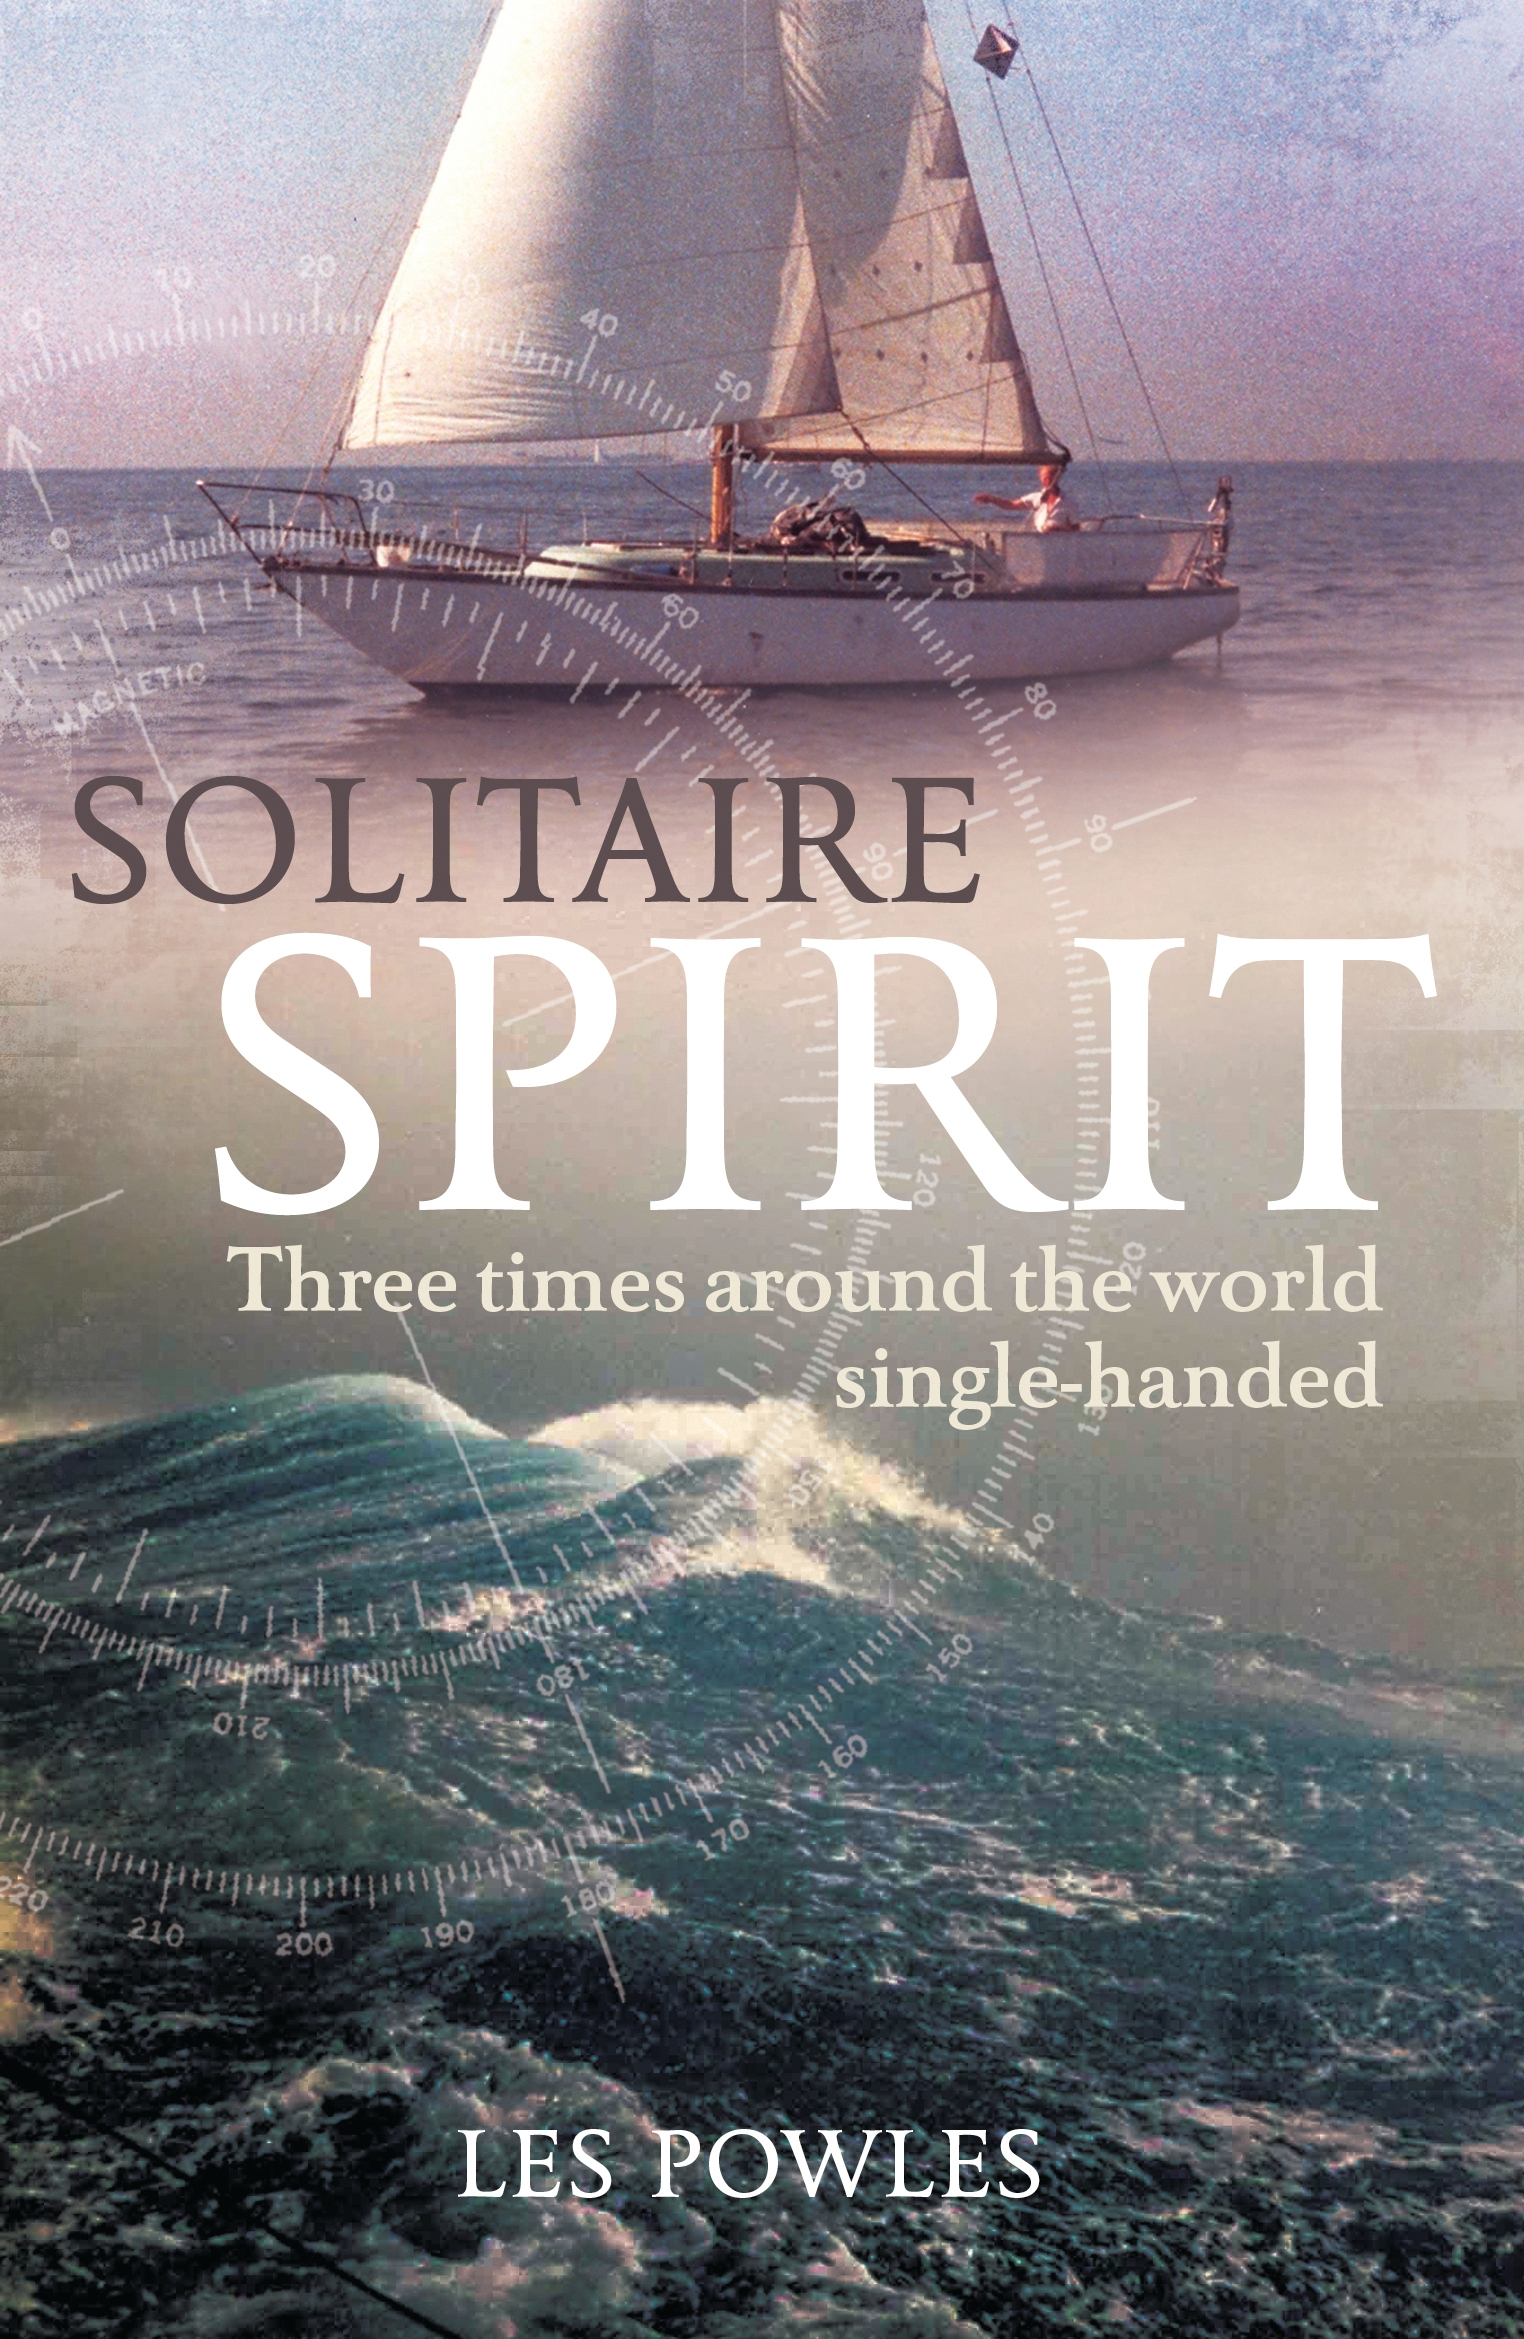 Solitaire Spirit: Three times around the world single-handed Three Times Around the World Single-Handed